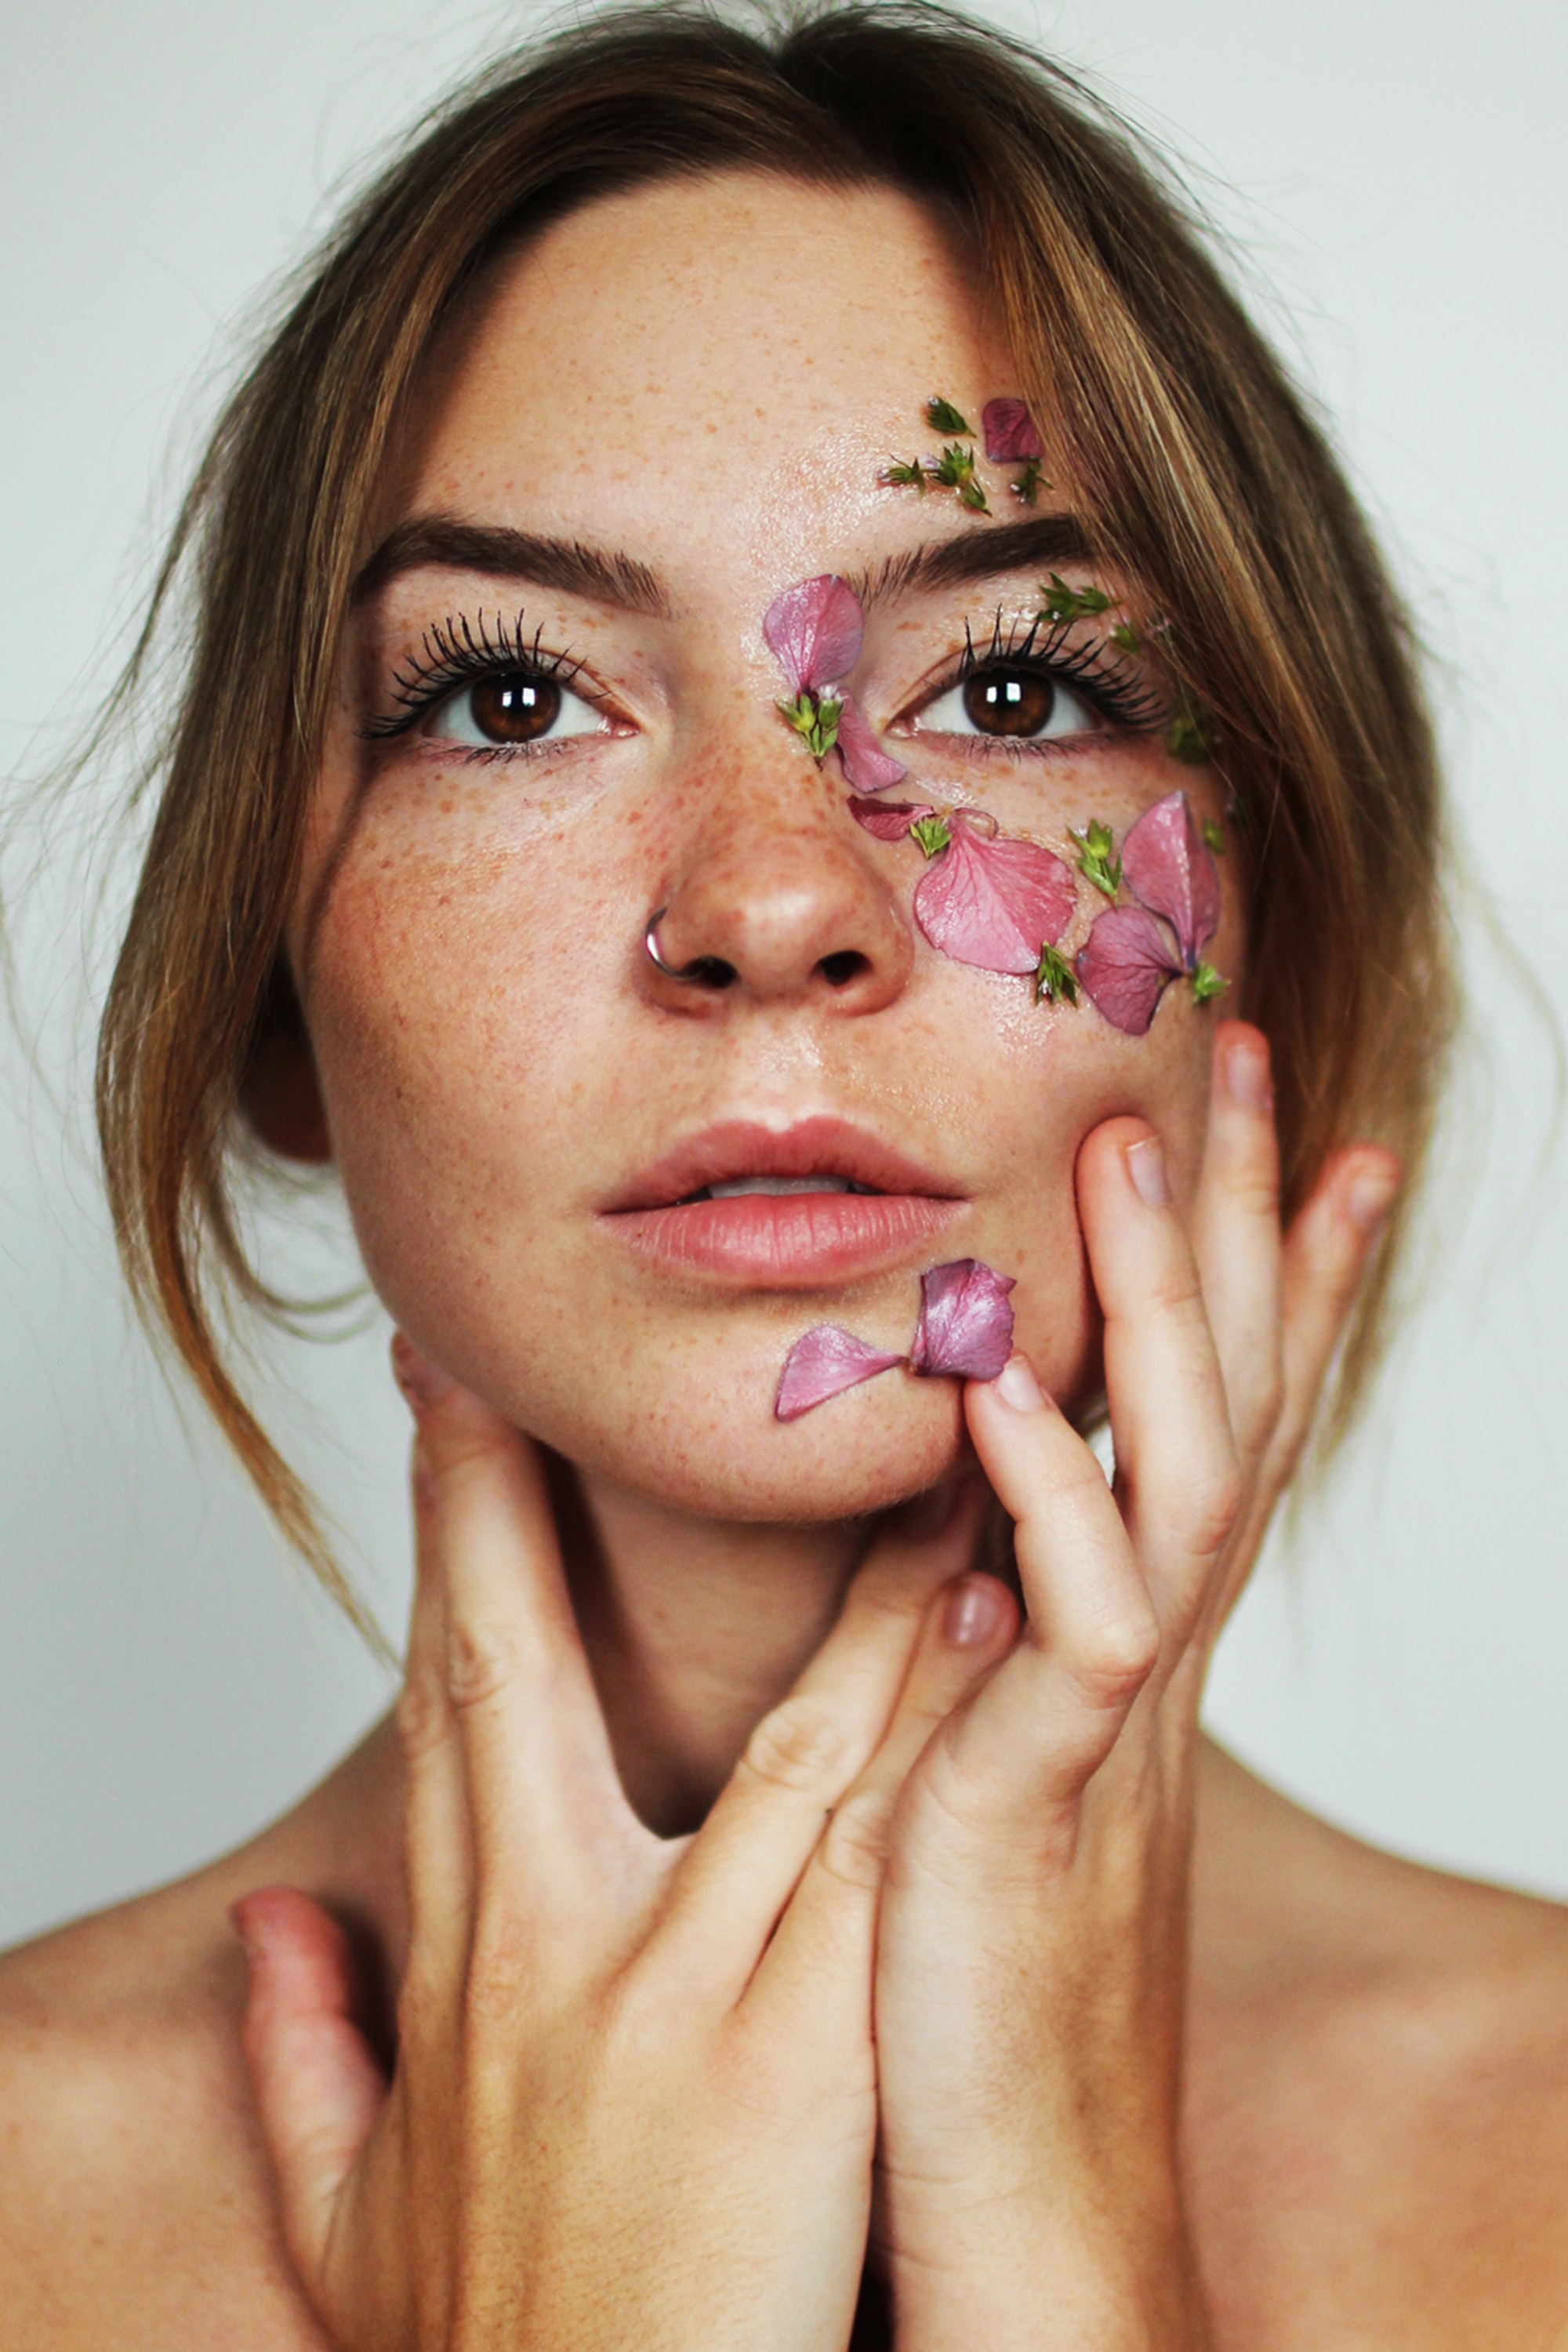 woman's face with pink flower petals on her face